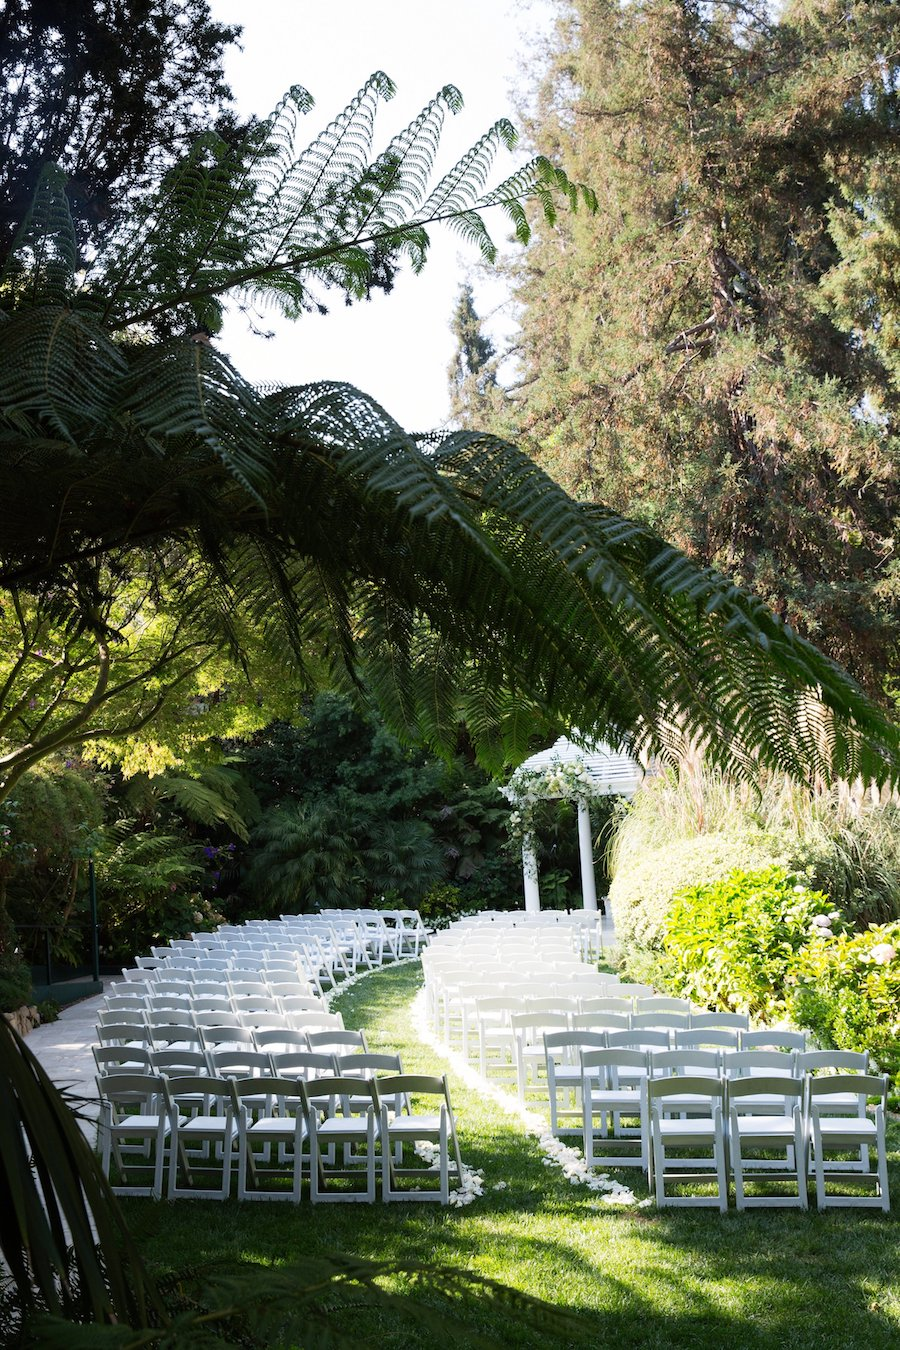 Hotel Bel Air wedding, blue Wedding, Outdoor Wedding, The Lighter Side, Hotel Bel Air, Max and Friends, Siren floral co, Minted, Found Vintage Rentals, Borrowed BLU, The Lighter Side